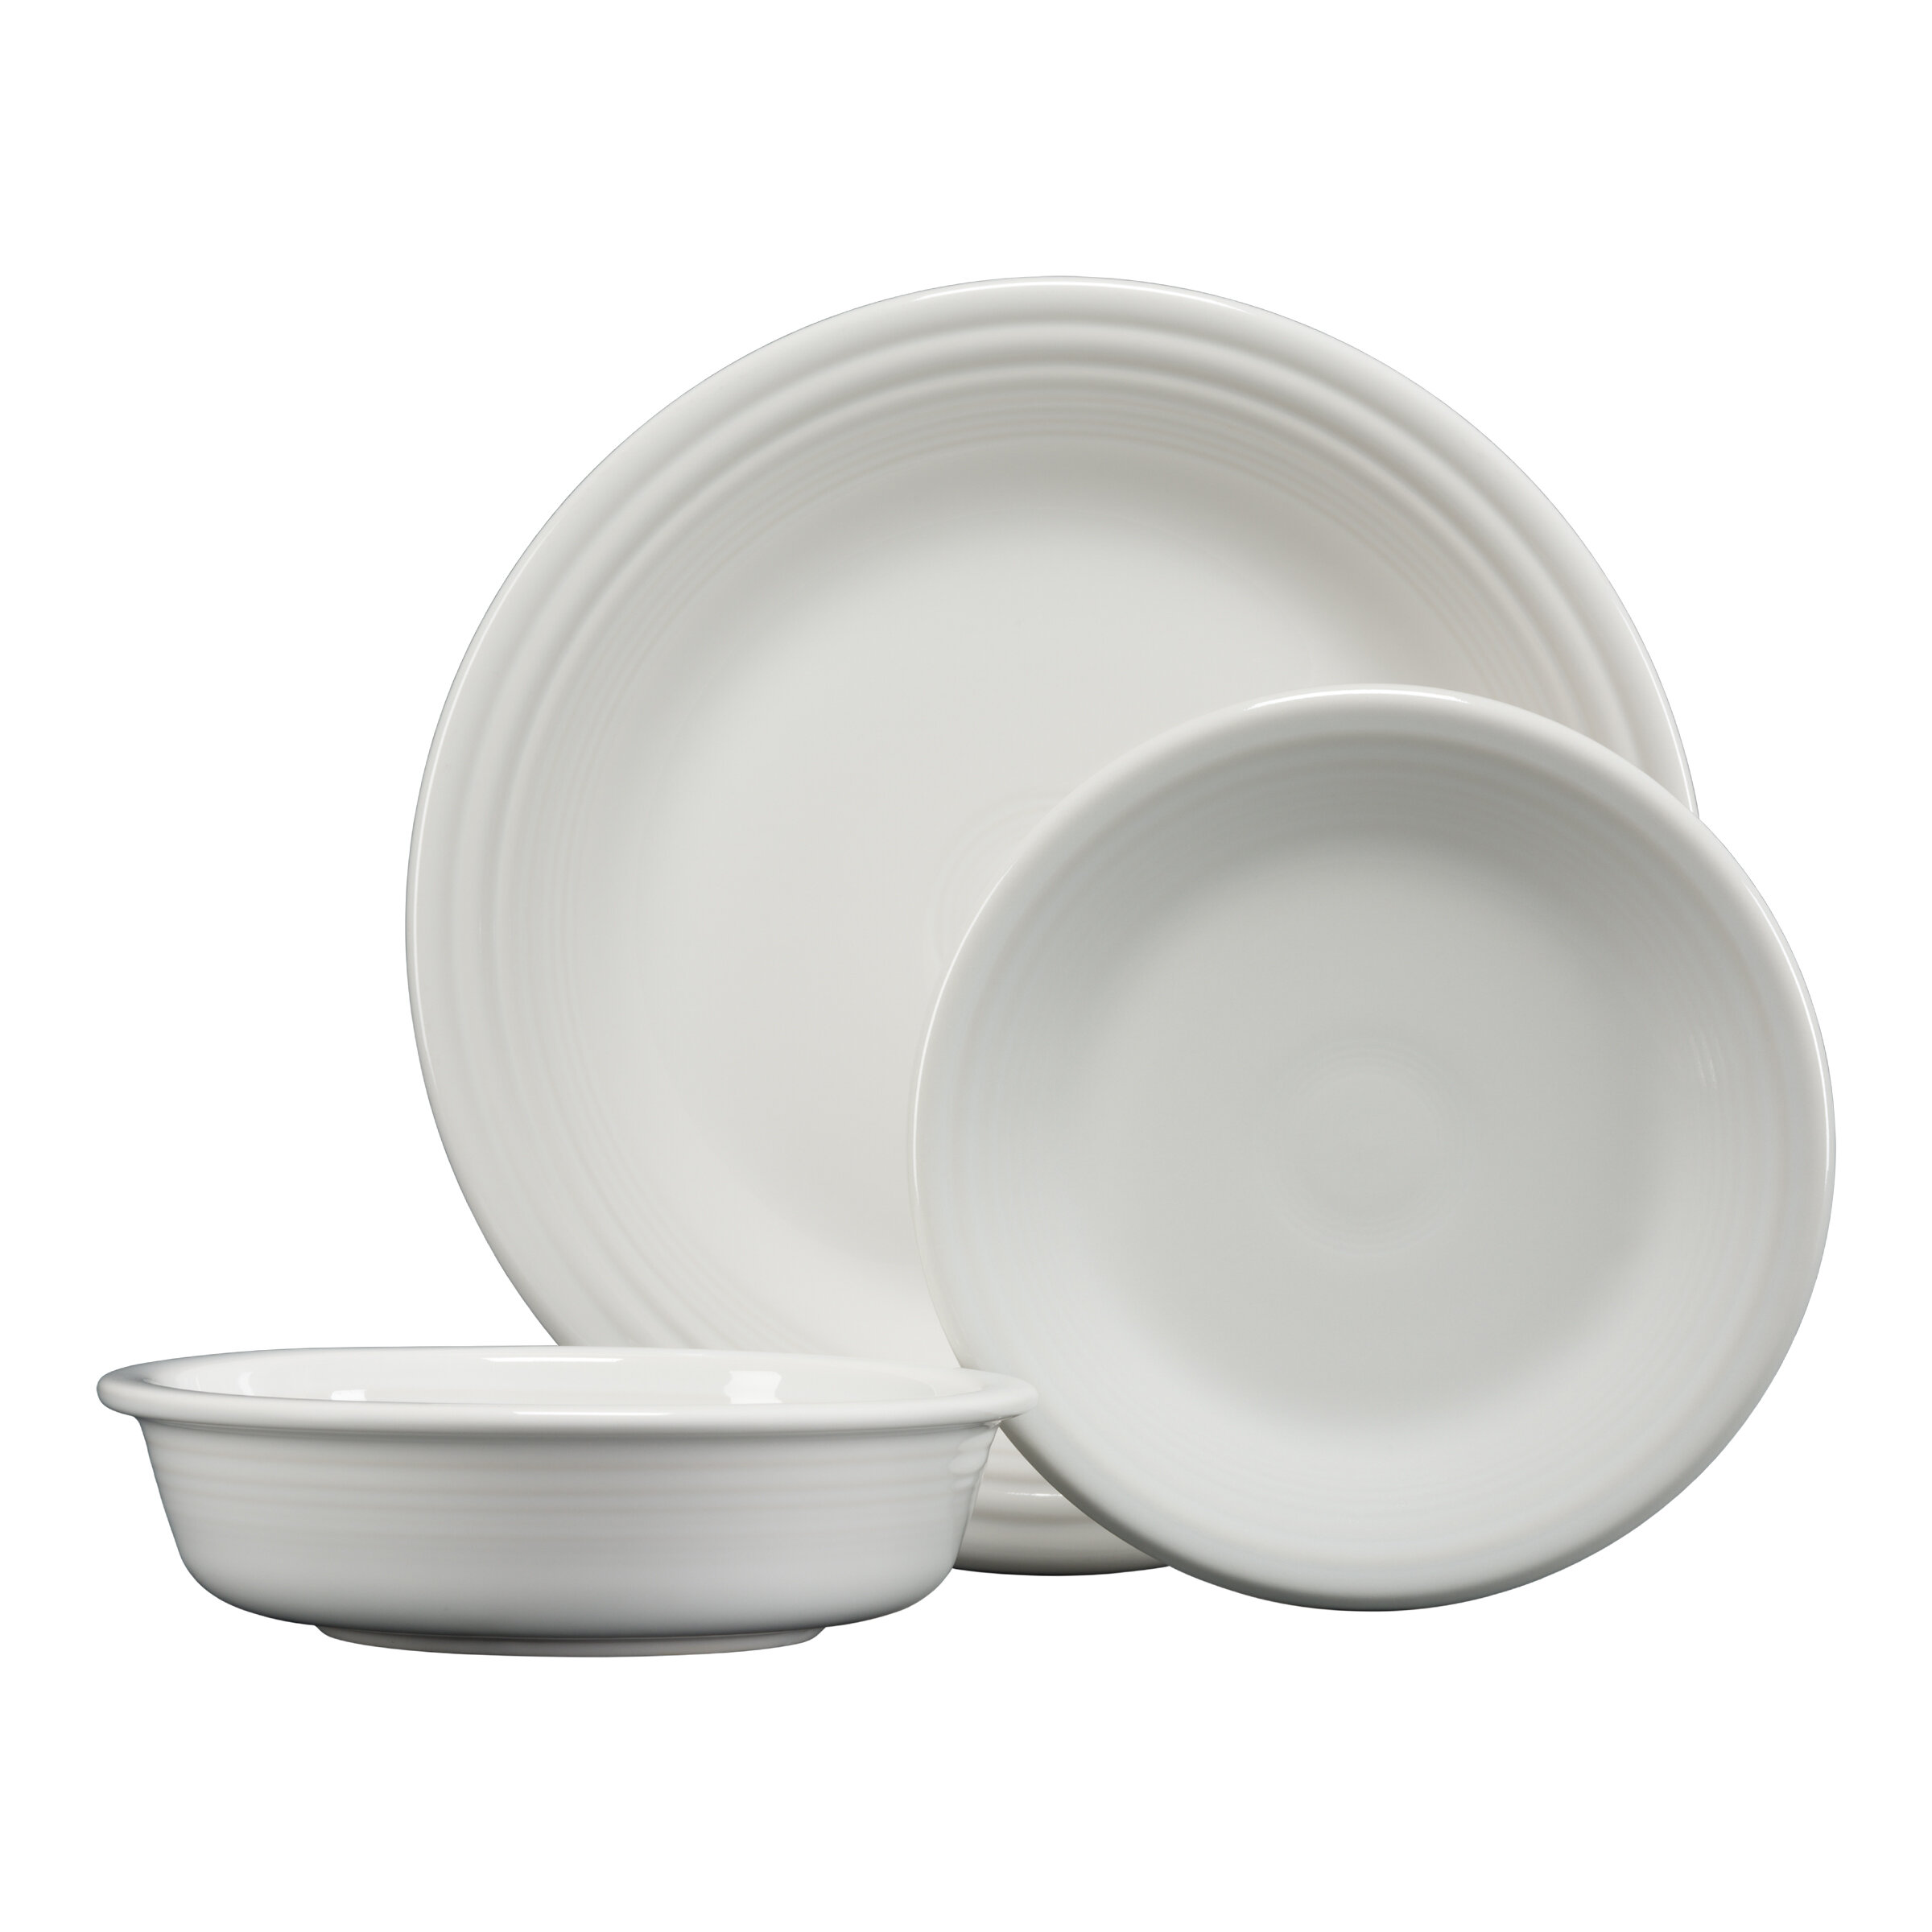 Standard Dinnerware Set without Mug  Up to 6% Off This Labor Day